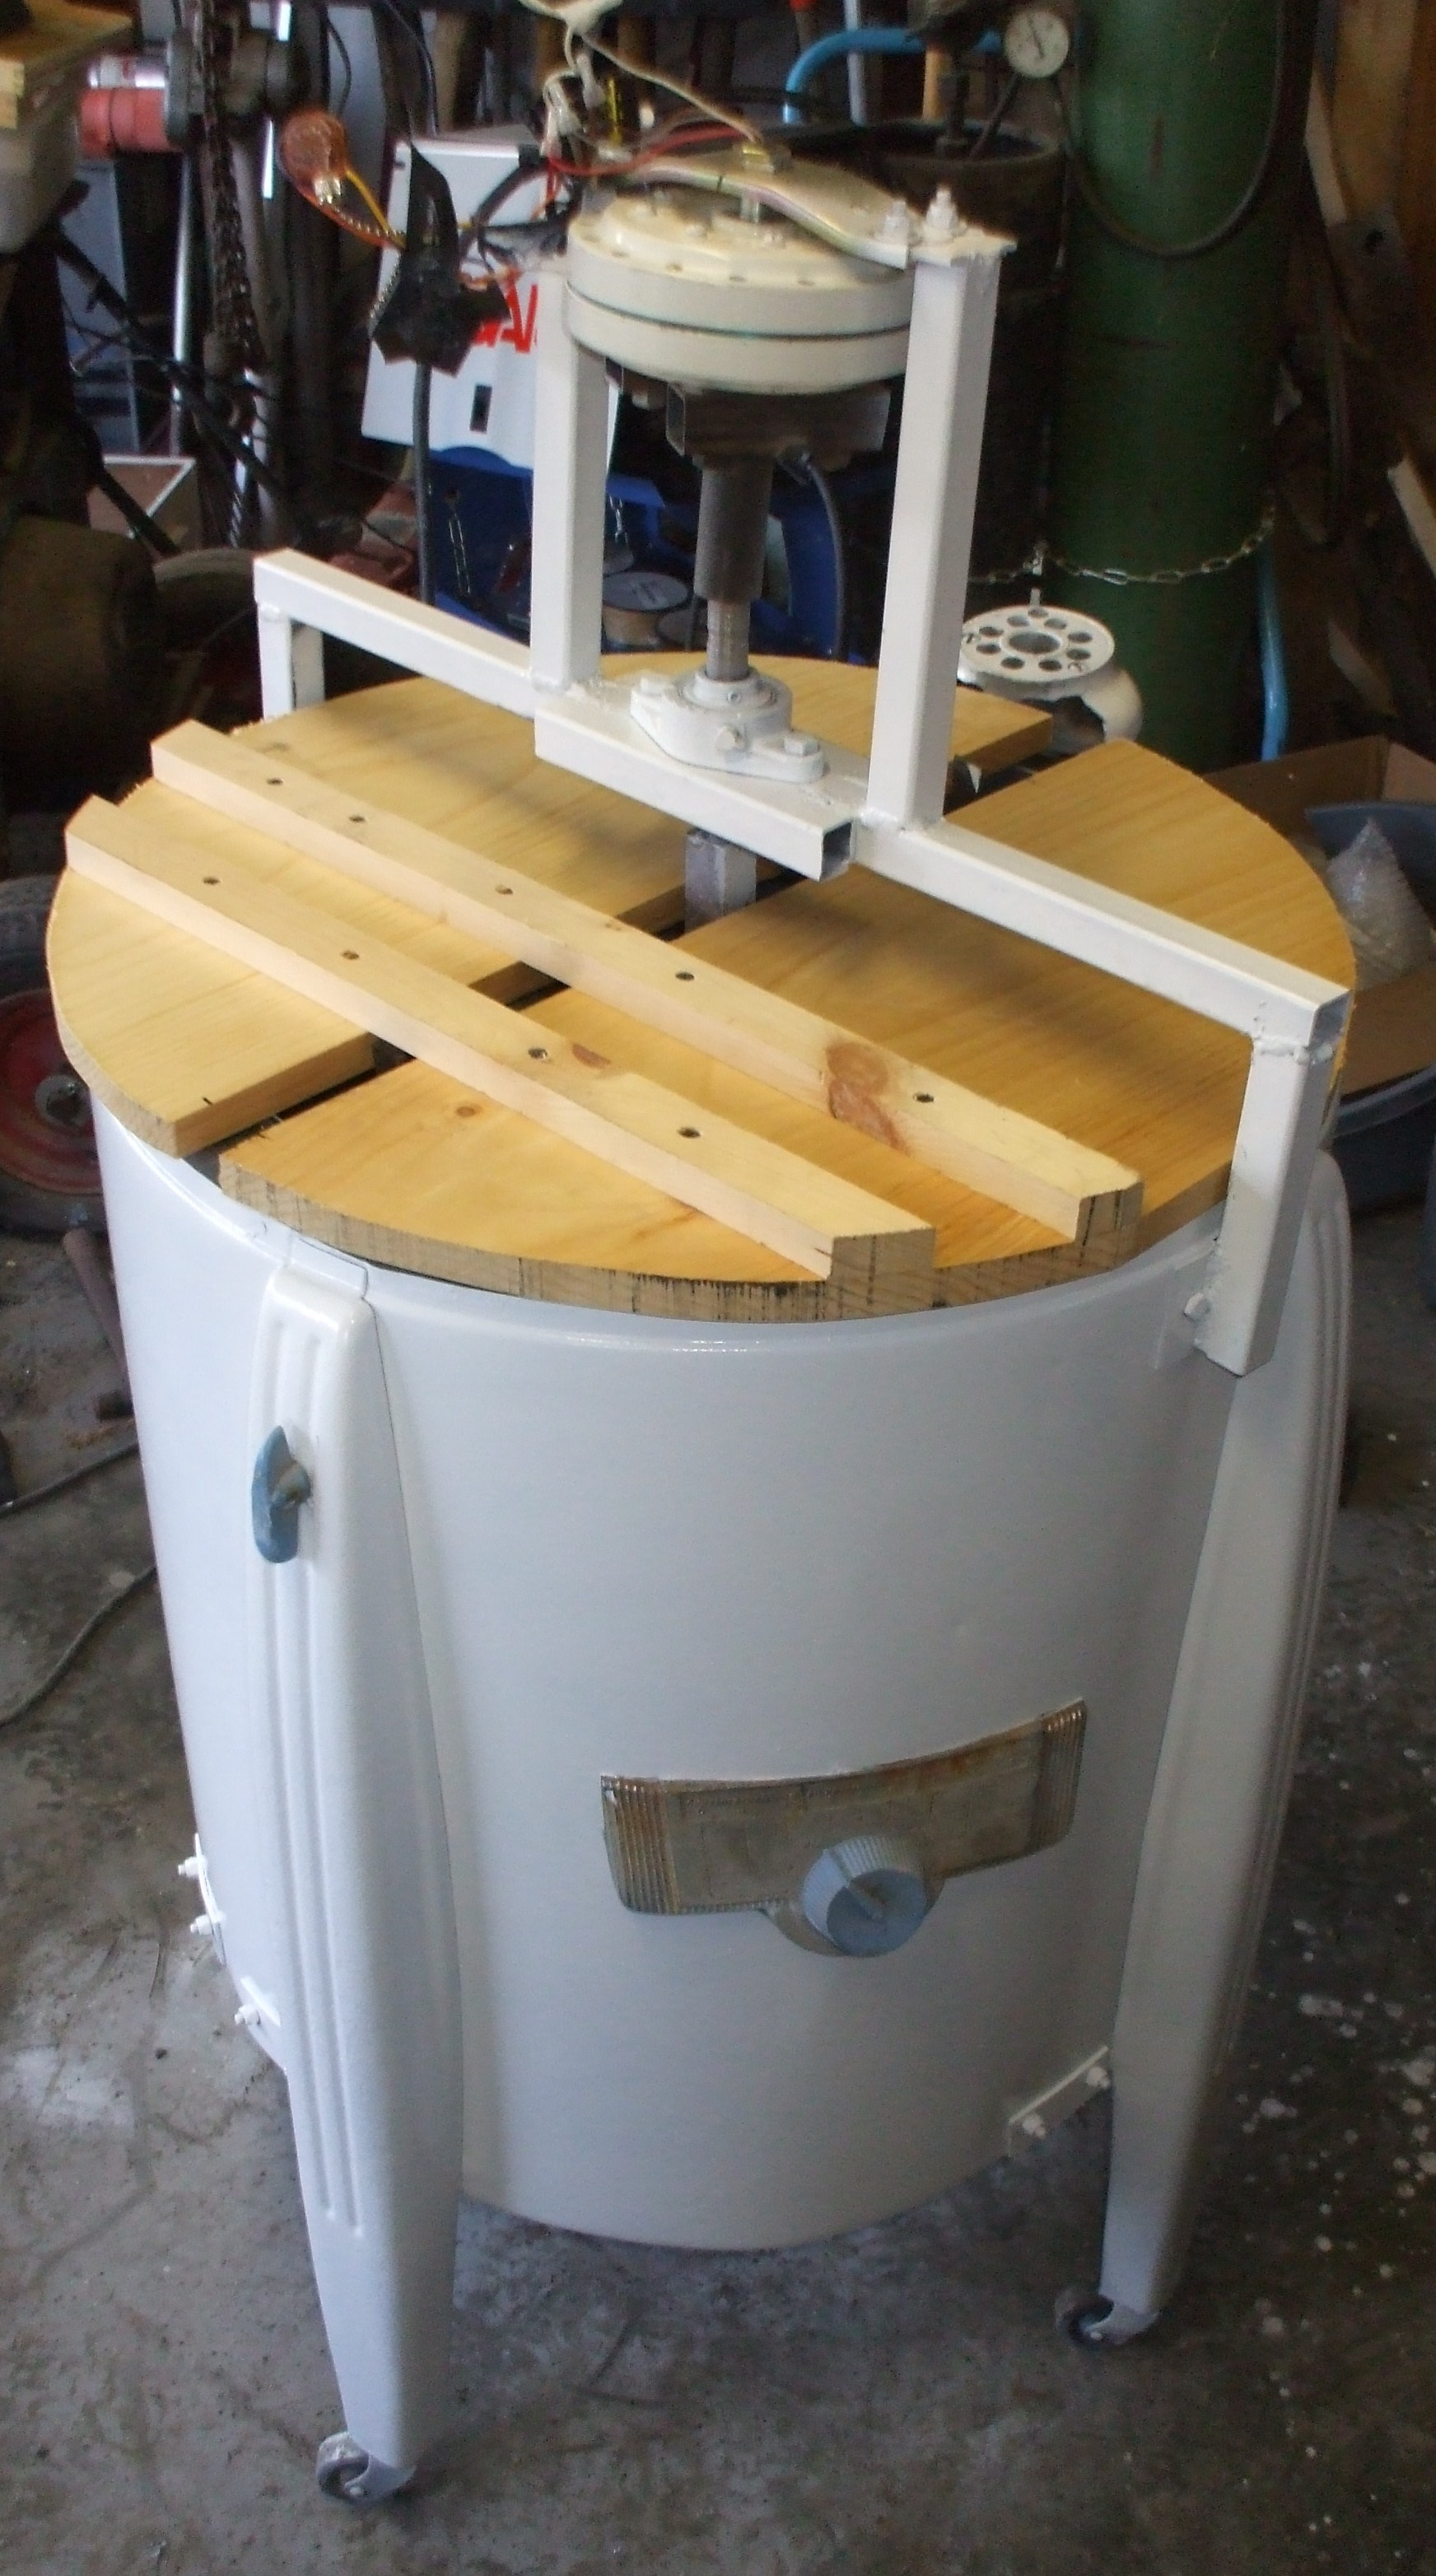 Picture of Building a Honey Extractor (using an 'antique' Washing Machine)